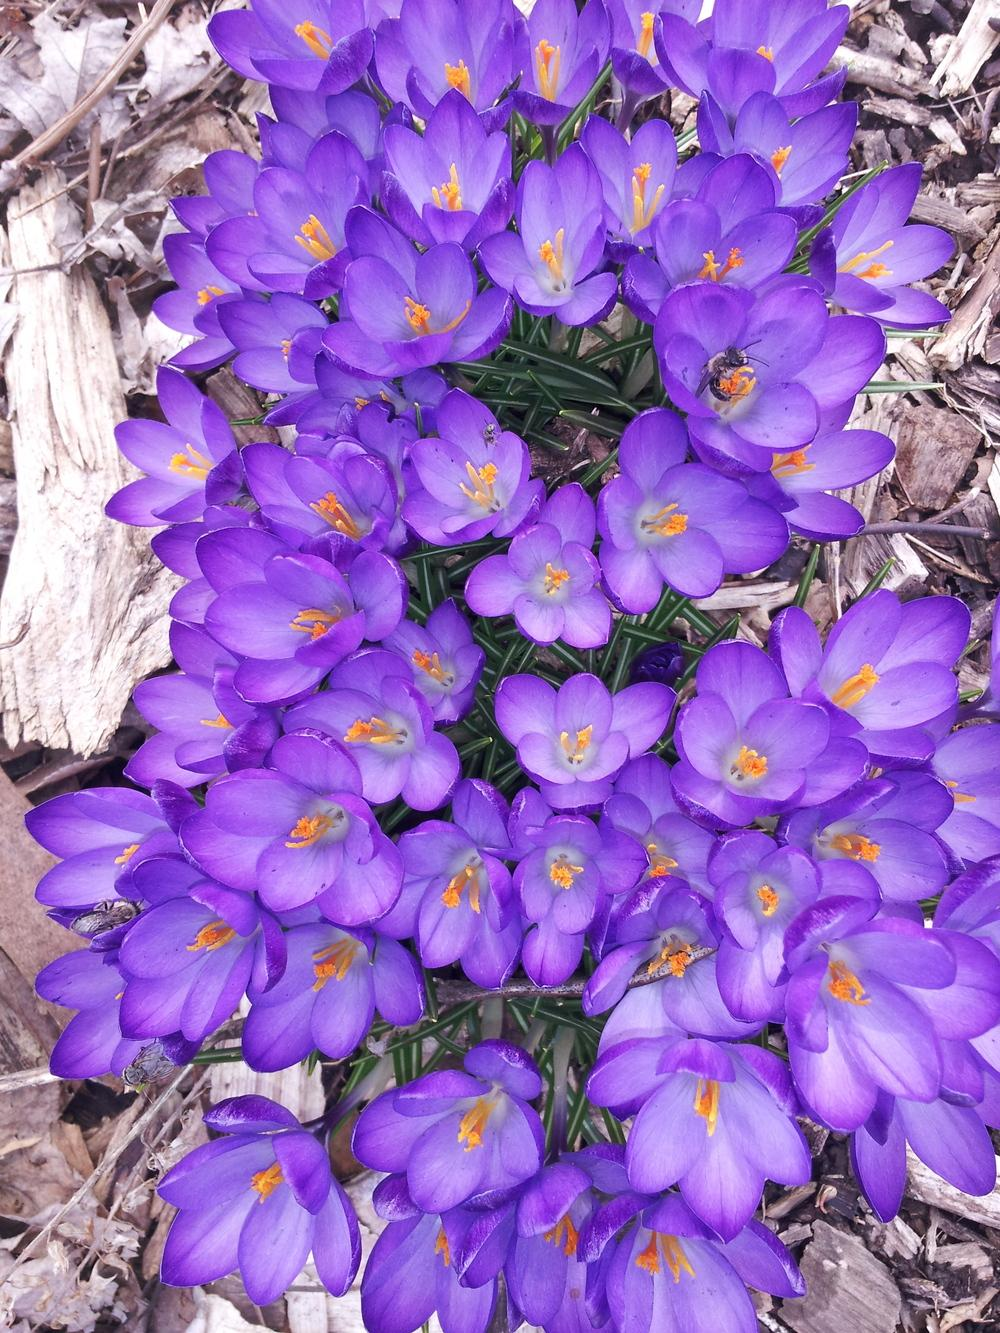 Photo of Snow Crocus (Crocus tommasinianus 'Ruby Giant') uploaded by gemini_sage